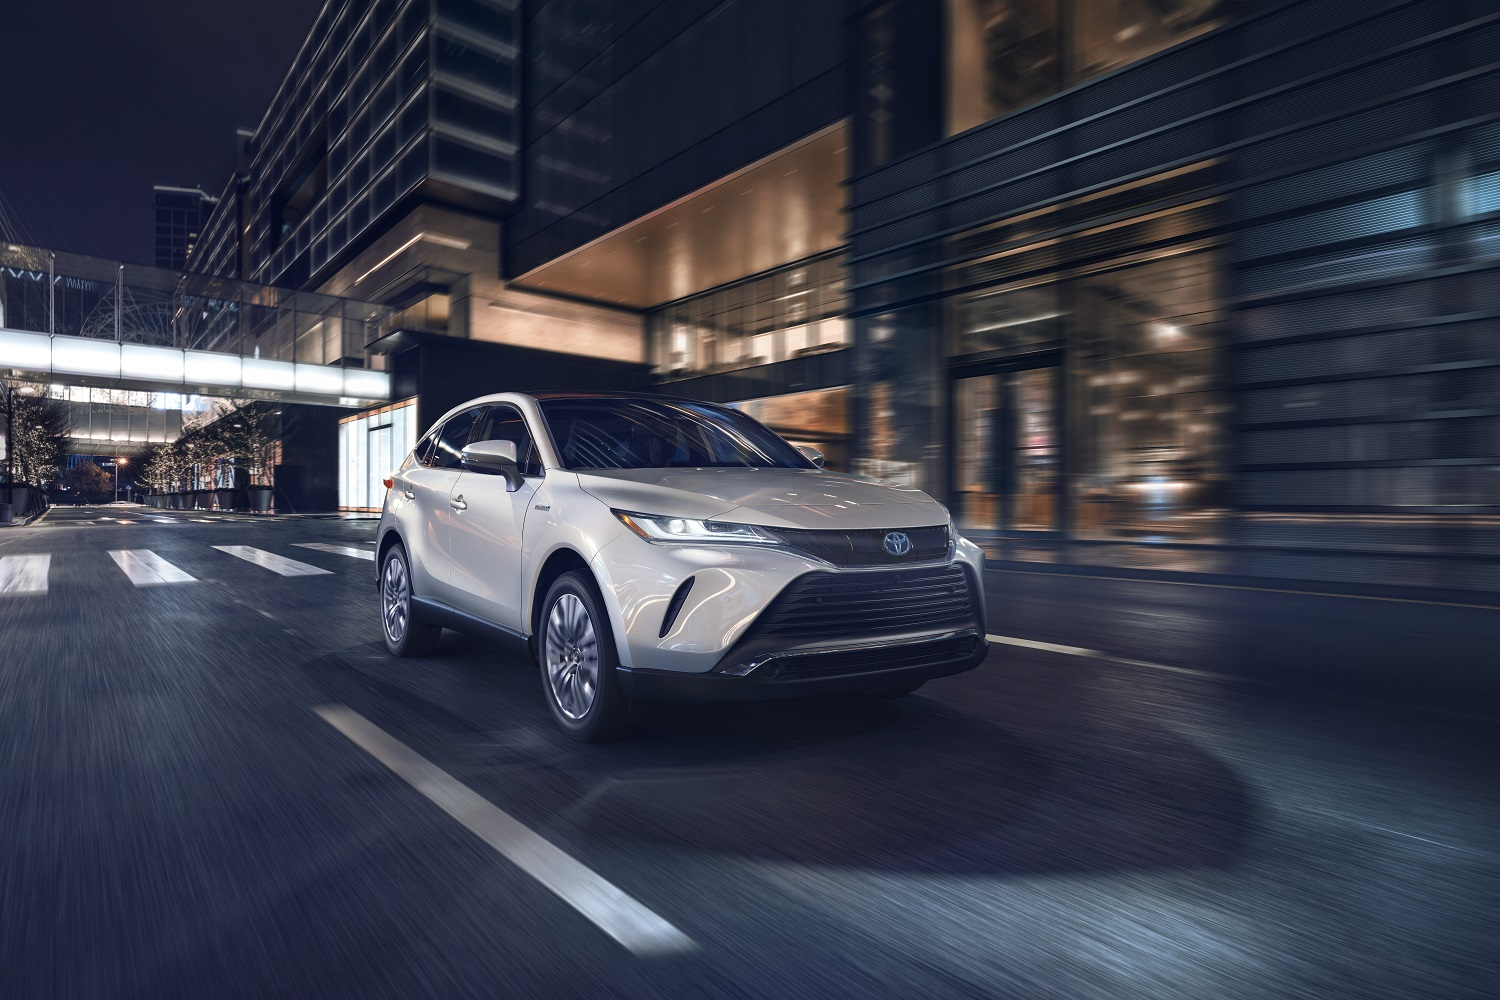 Toyota Venzas available in Boise, ID at Peterson Toyota